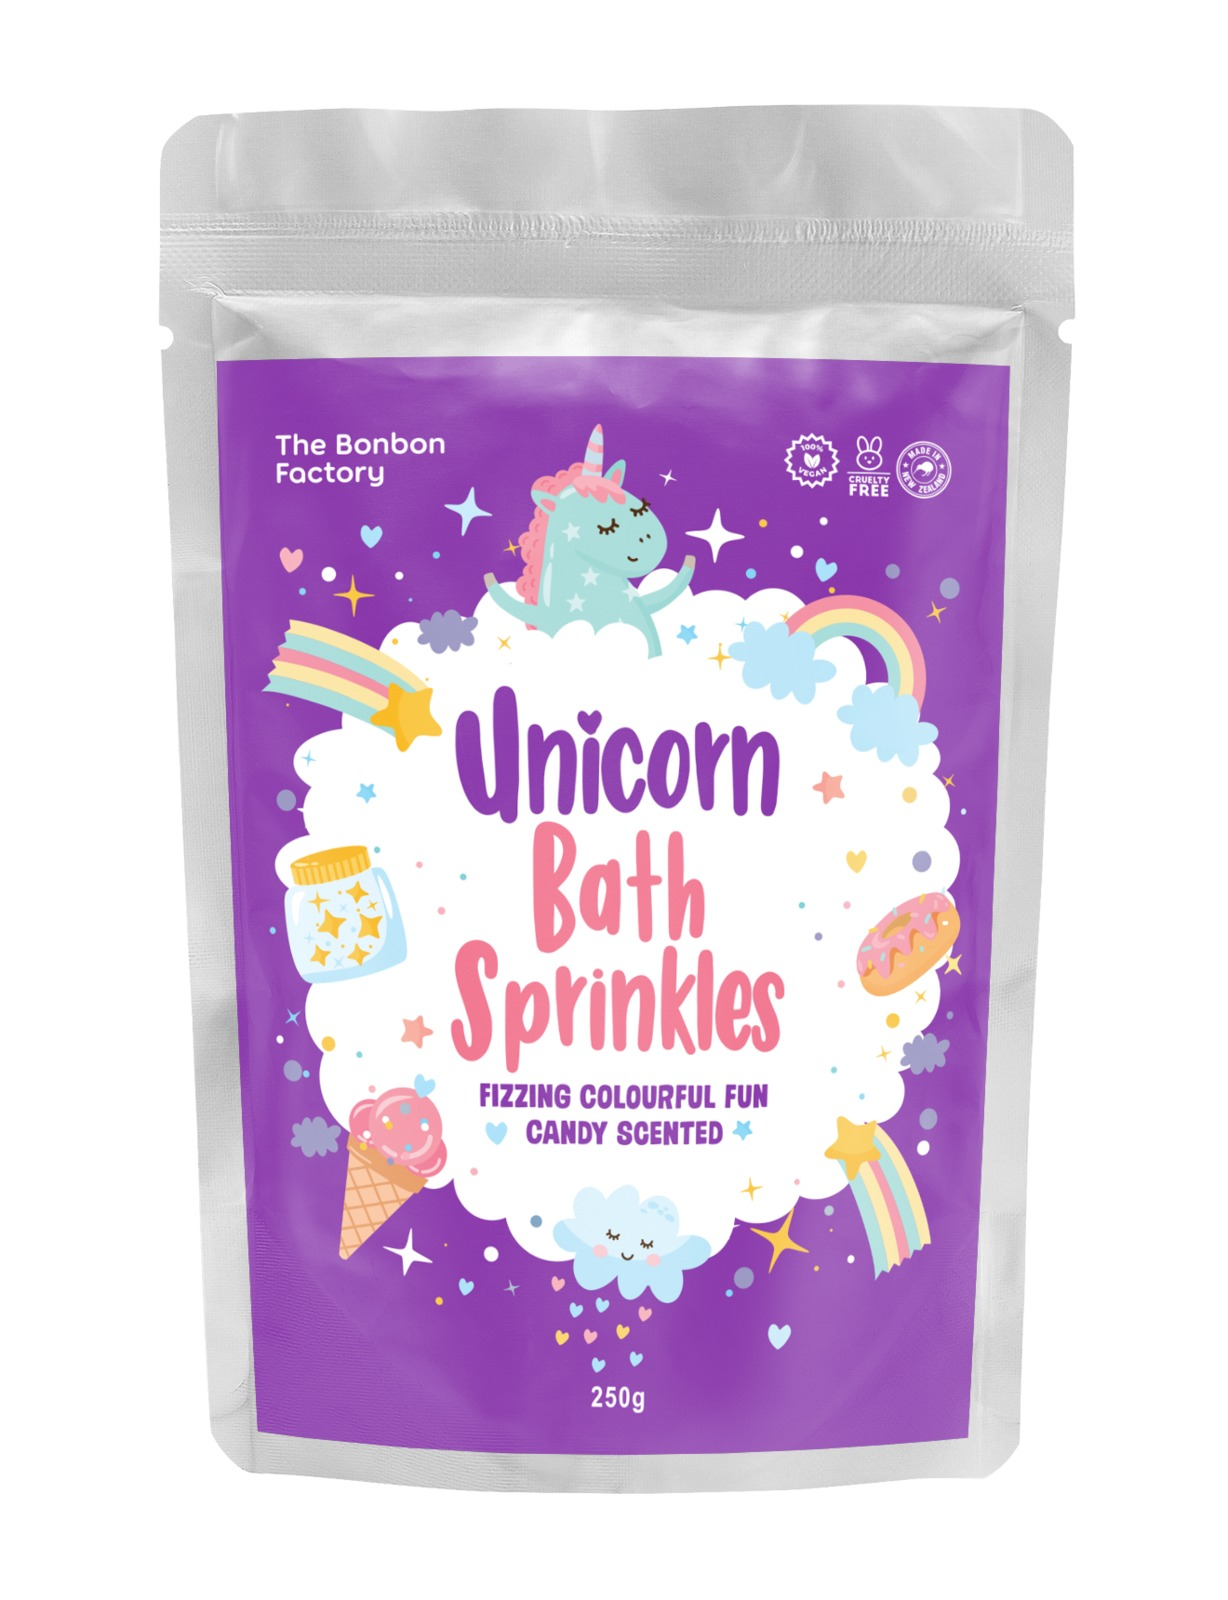 The Bonbon Factory Unicorn Bath Sprinkles - Candy Scented (250g) image